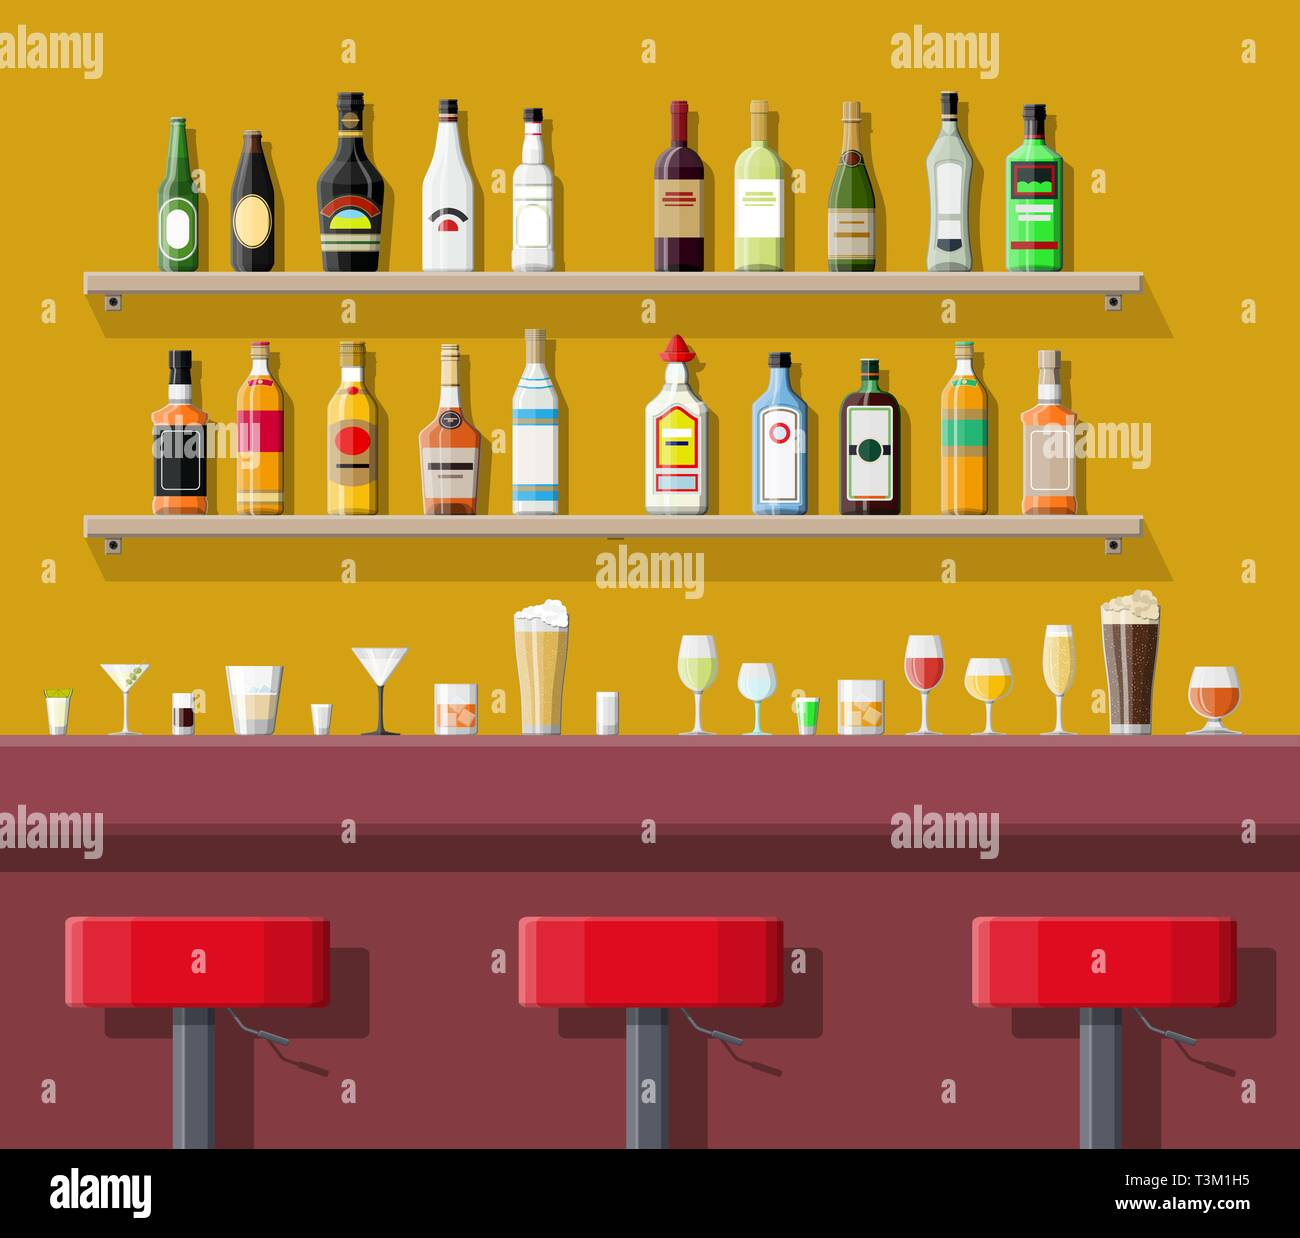 Drinking establishment. Interior of pub, cafe or bar. Bar counter, chairs and shelves with alcohol bottles. Glasses and lamp. Vector illustration in f Stock Vector